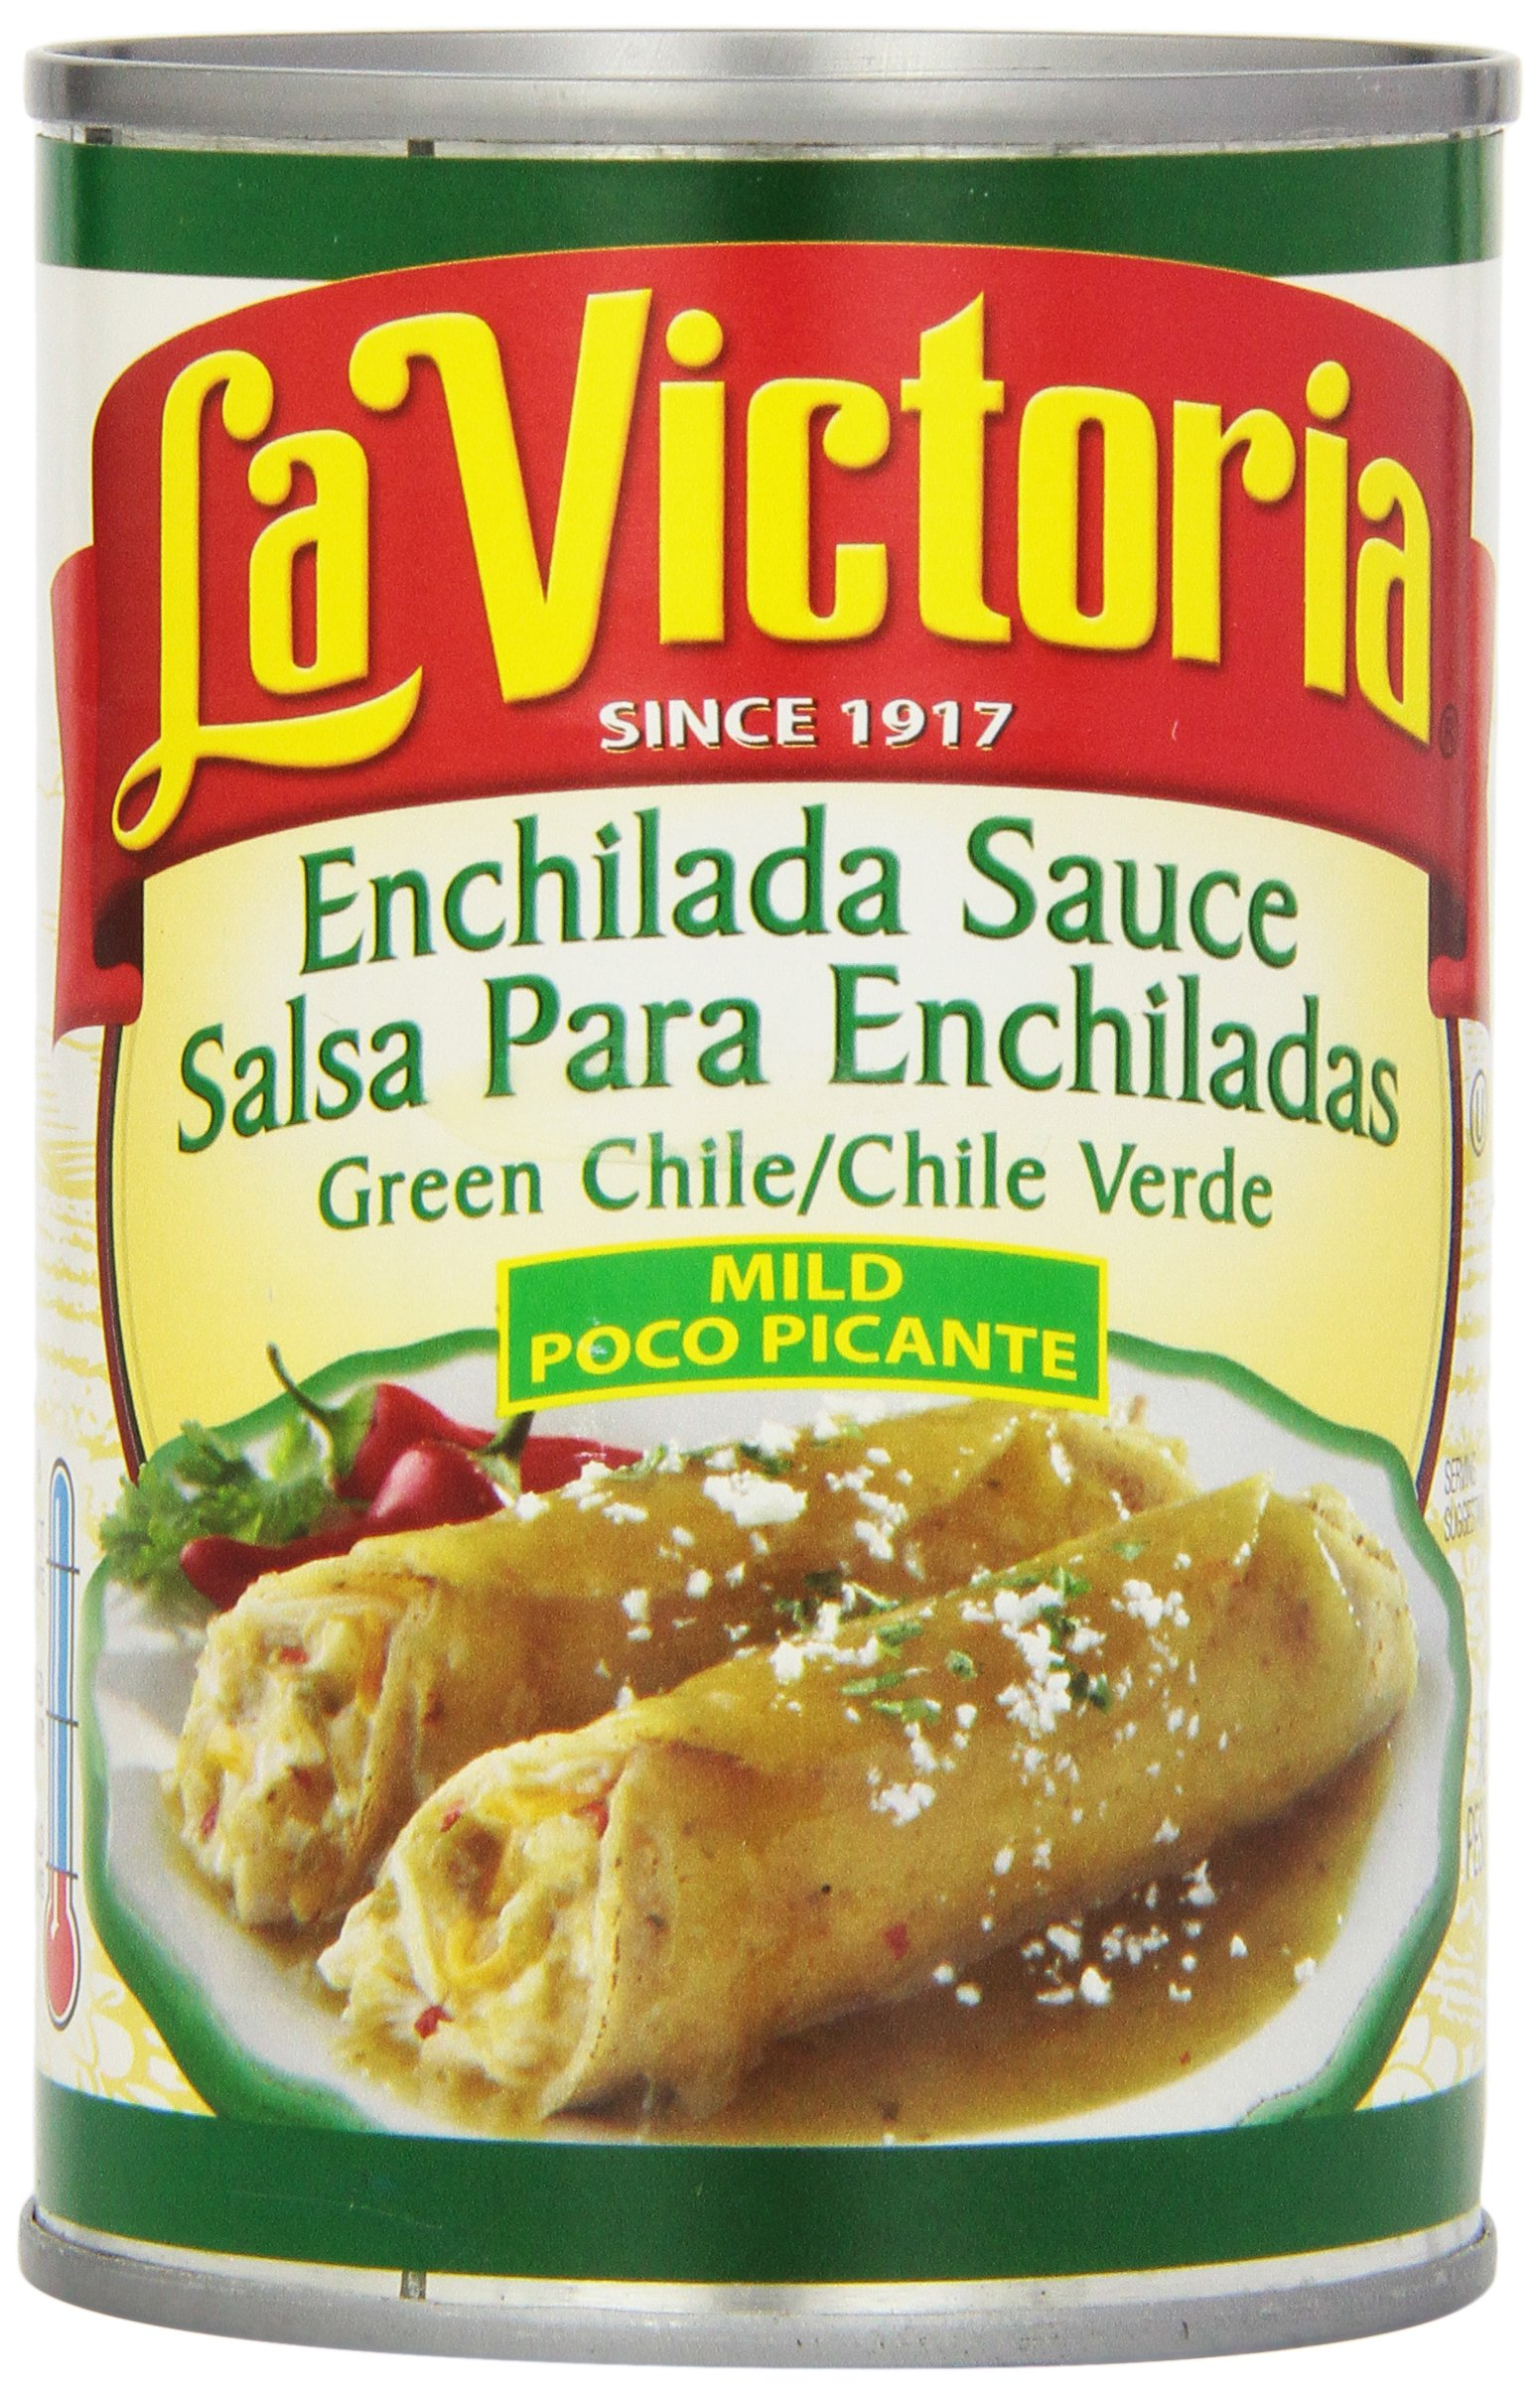 La Victoria Green Enchilada Sauce, Mild, 10-Ounce Cans (Pack of 12)